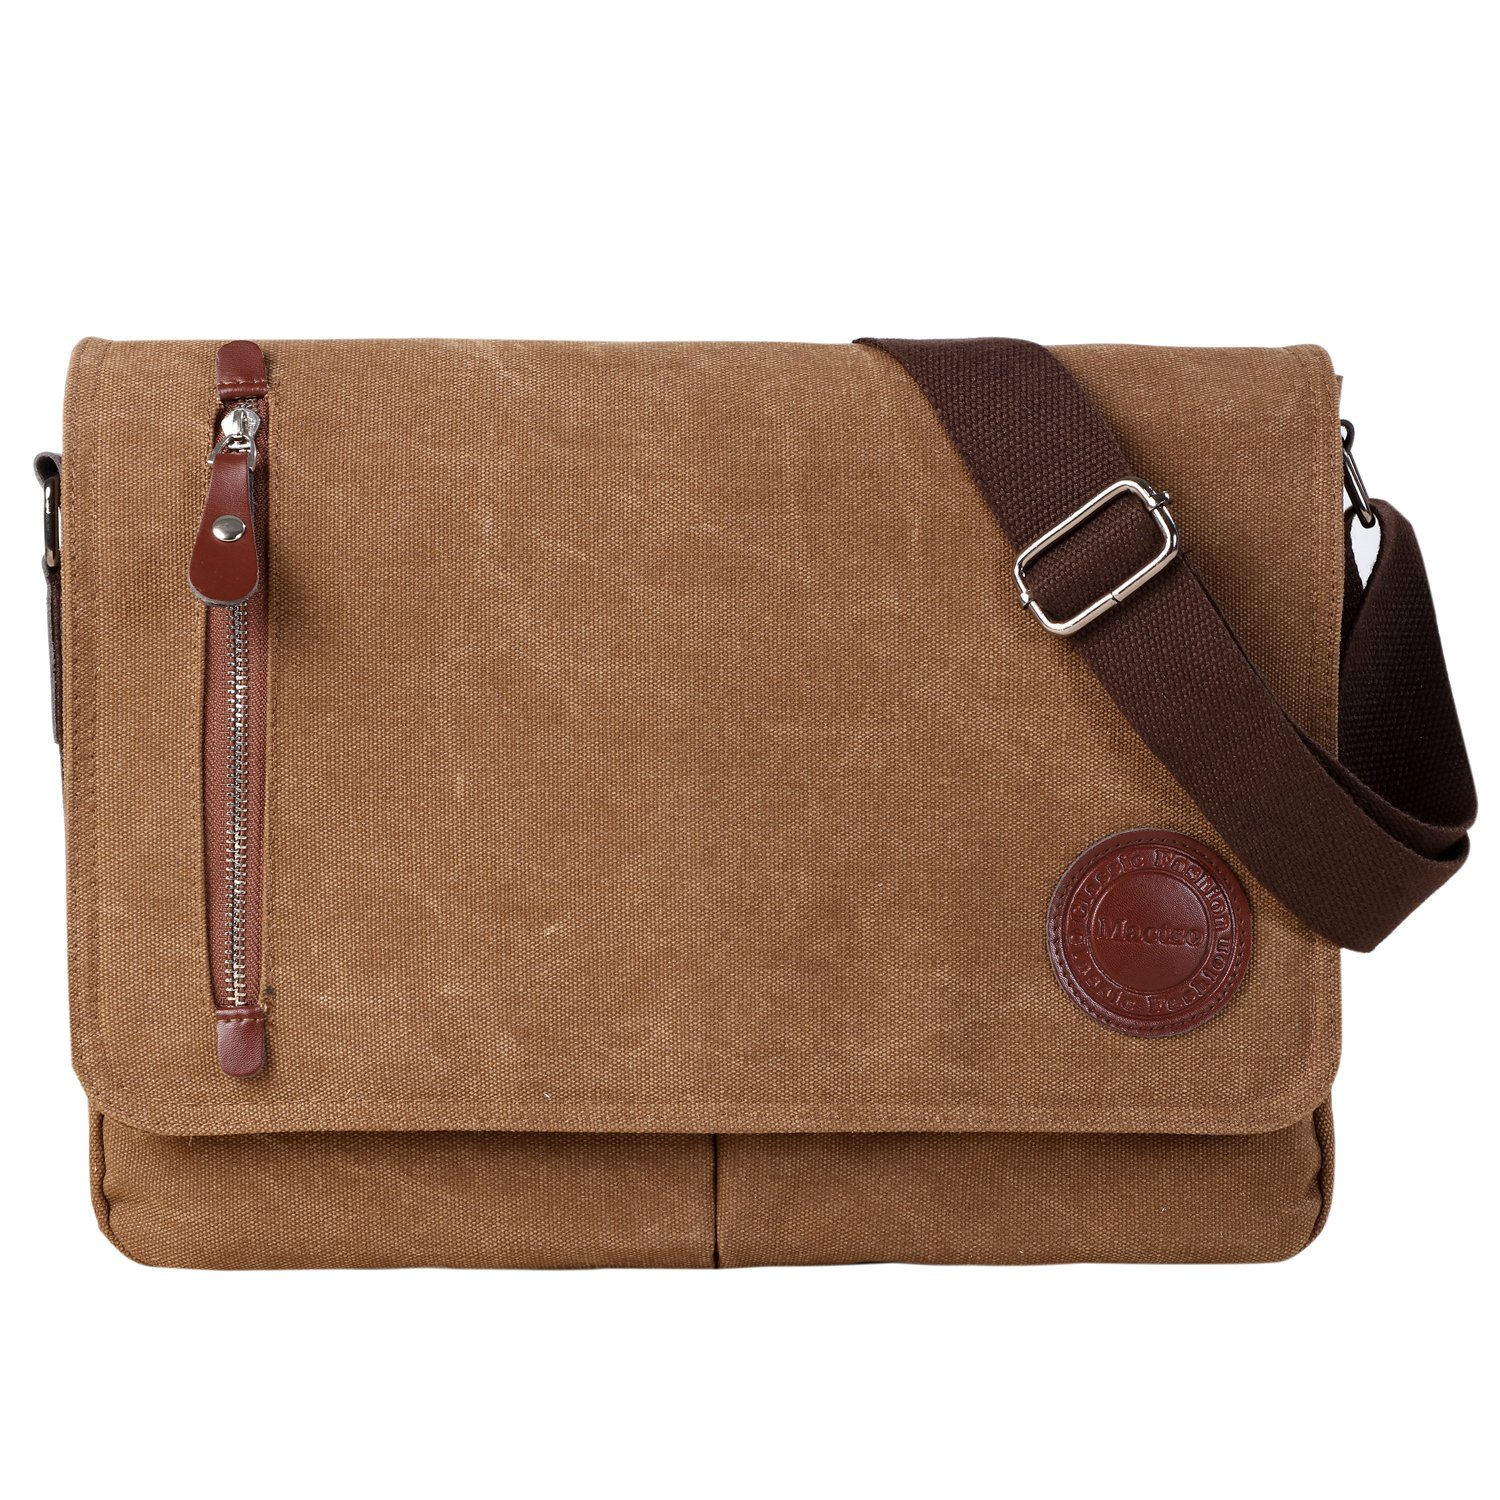 "Vintage Canvas Satchel Messenger Bag for Men Women,Travel Shoulder Bag 13.5"" Laptop Bags Bookbag (Coffee)"